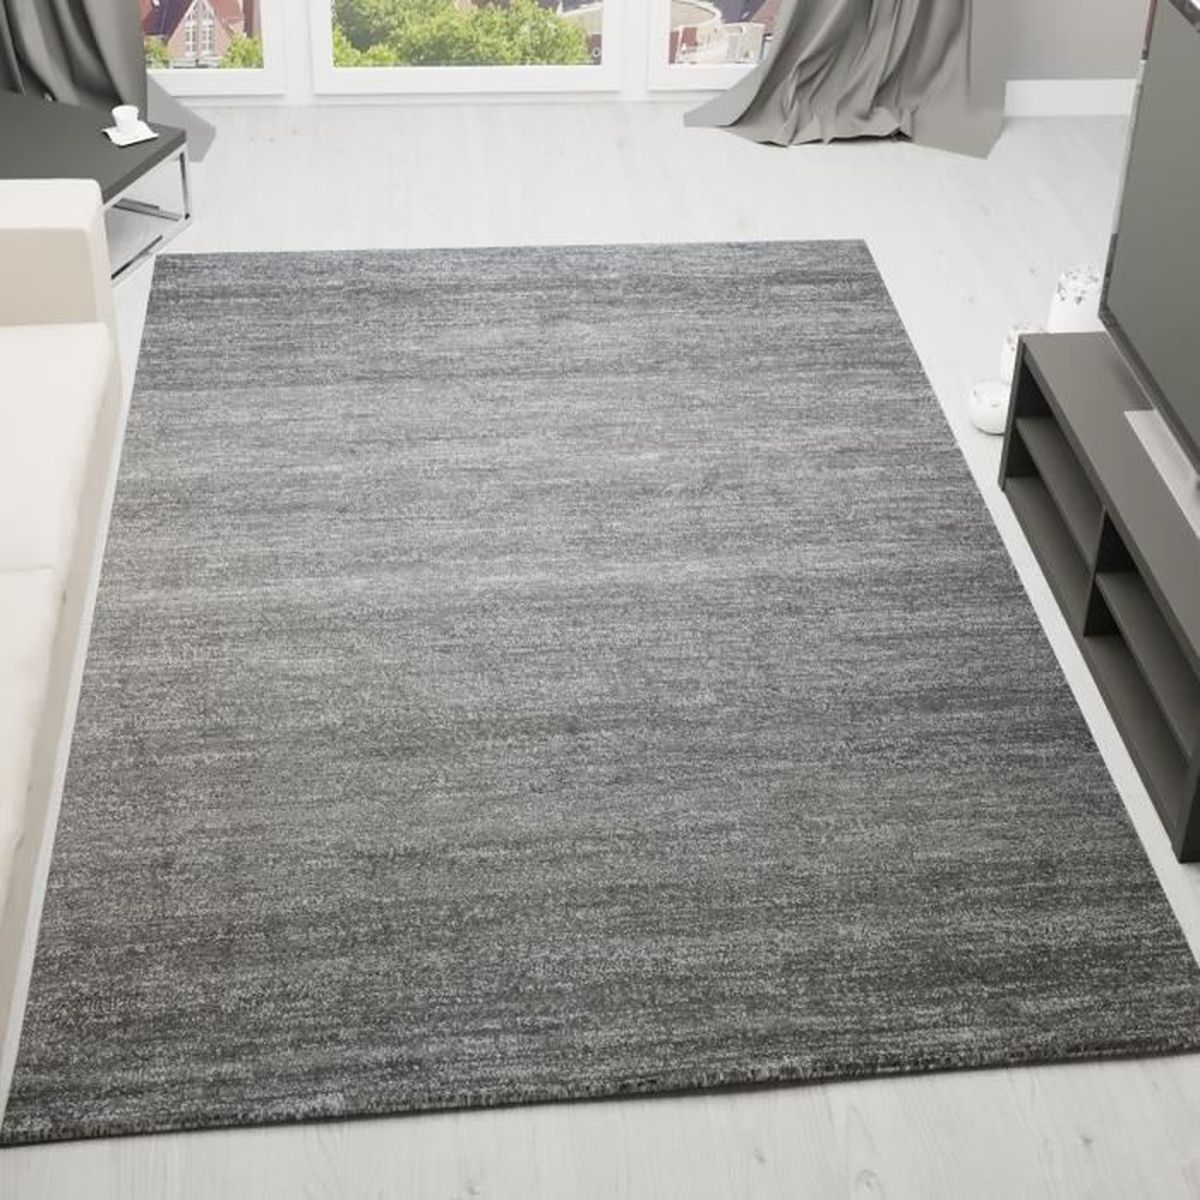 tapis gris et blanc. Black Bedroom Furniture Sets. Home Design Ideas